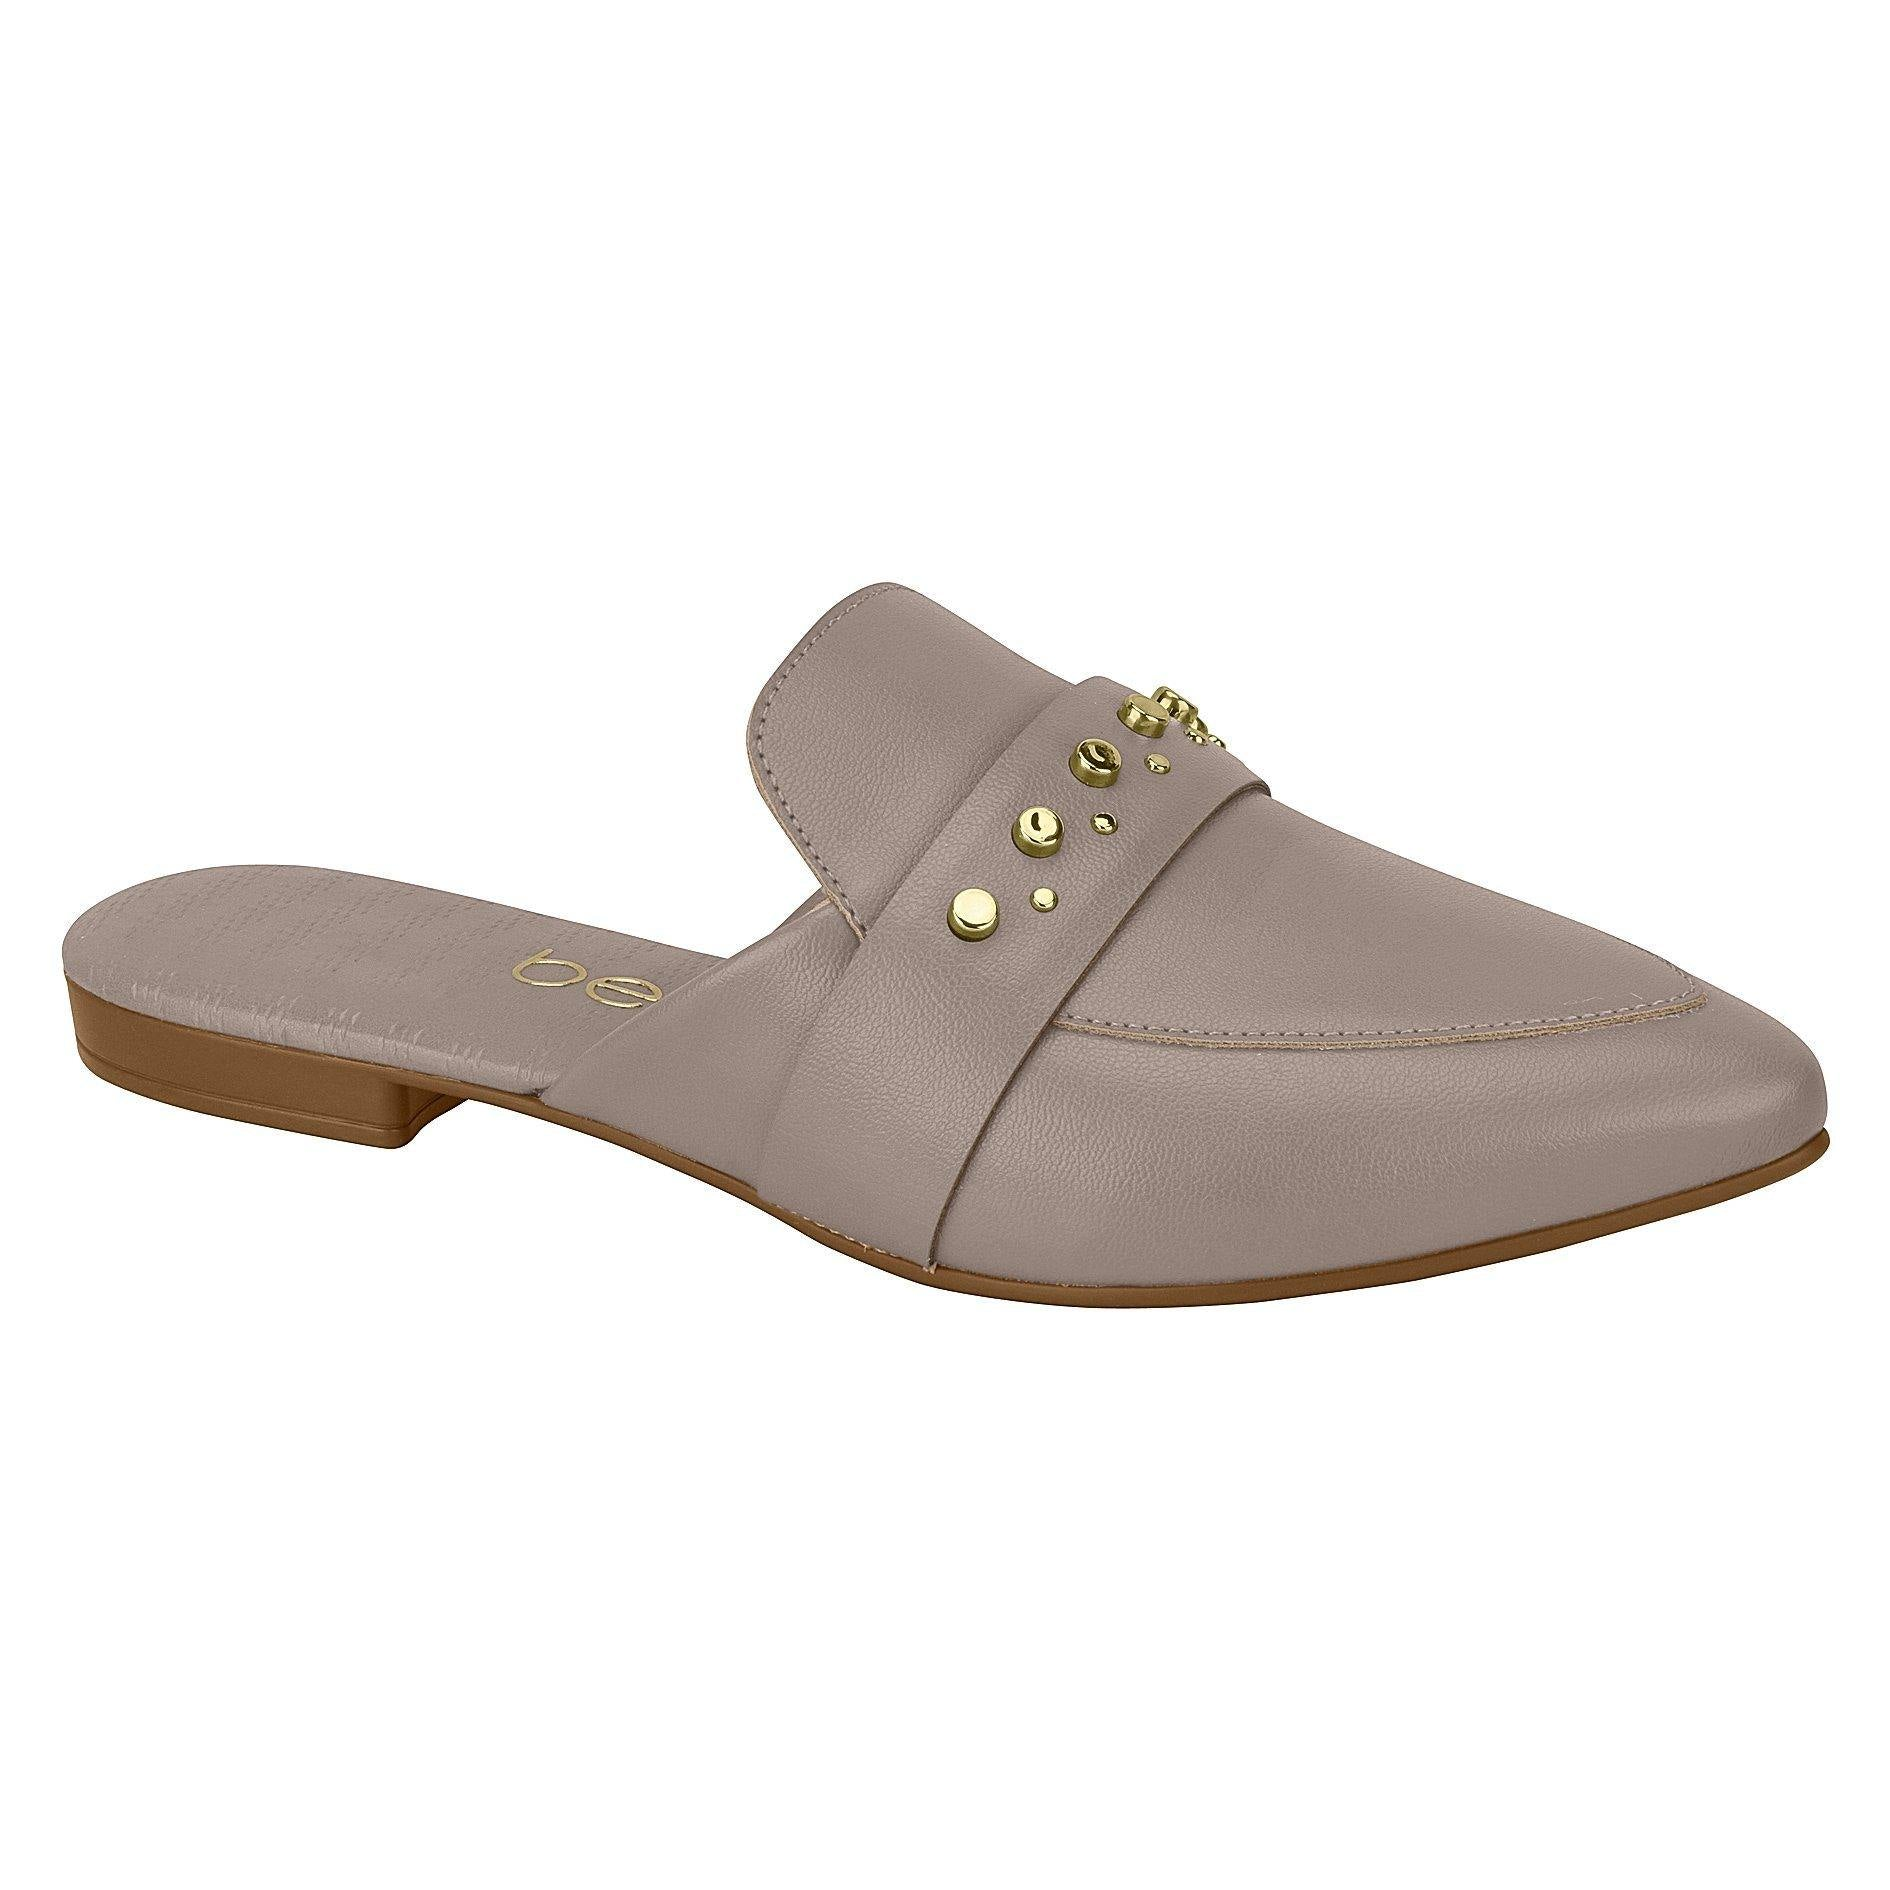 Beira Rio 4134-468 Pointy Toe Flat Mule in Grey Napa